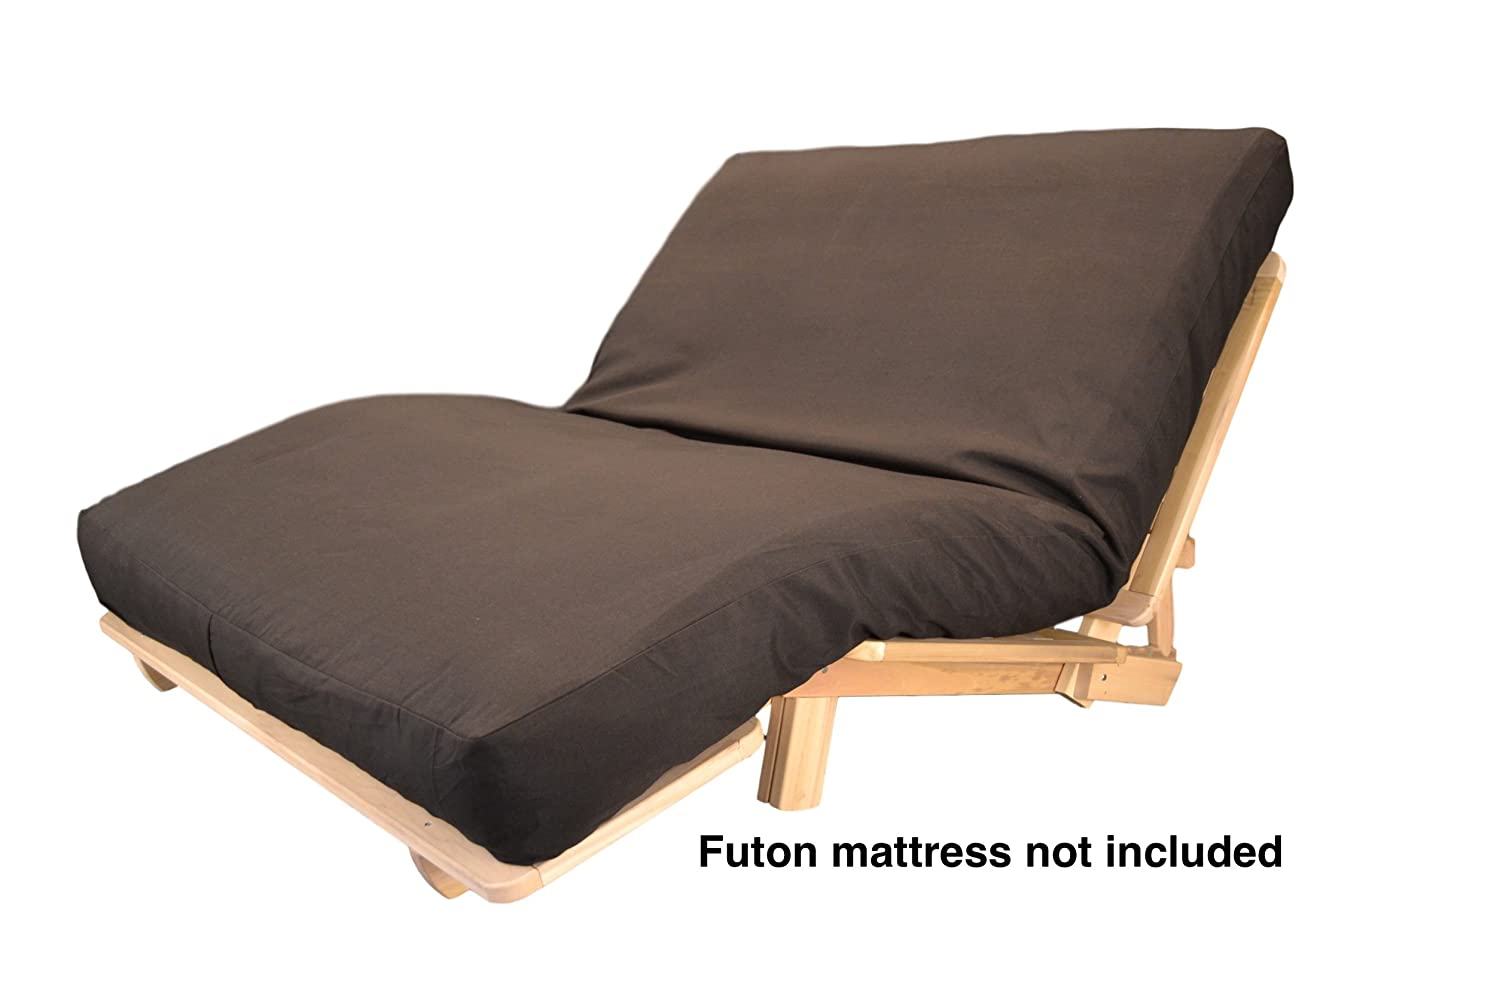 6 Foot Futon 6 Foot Futon Cover And 6 Foot Futon Frame